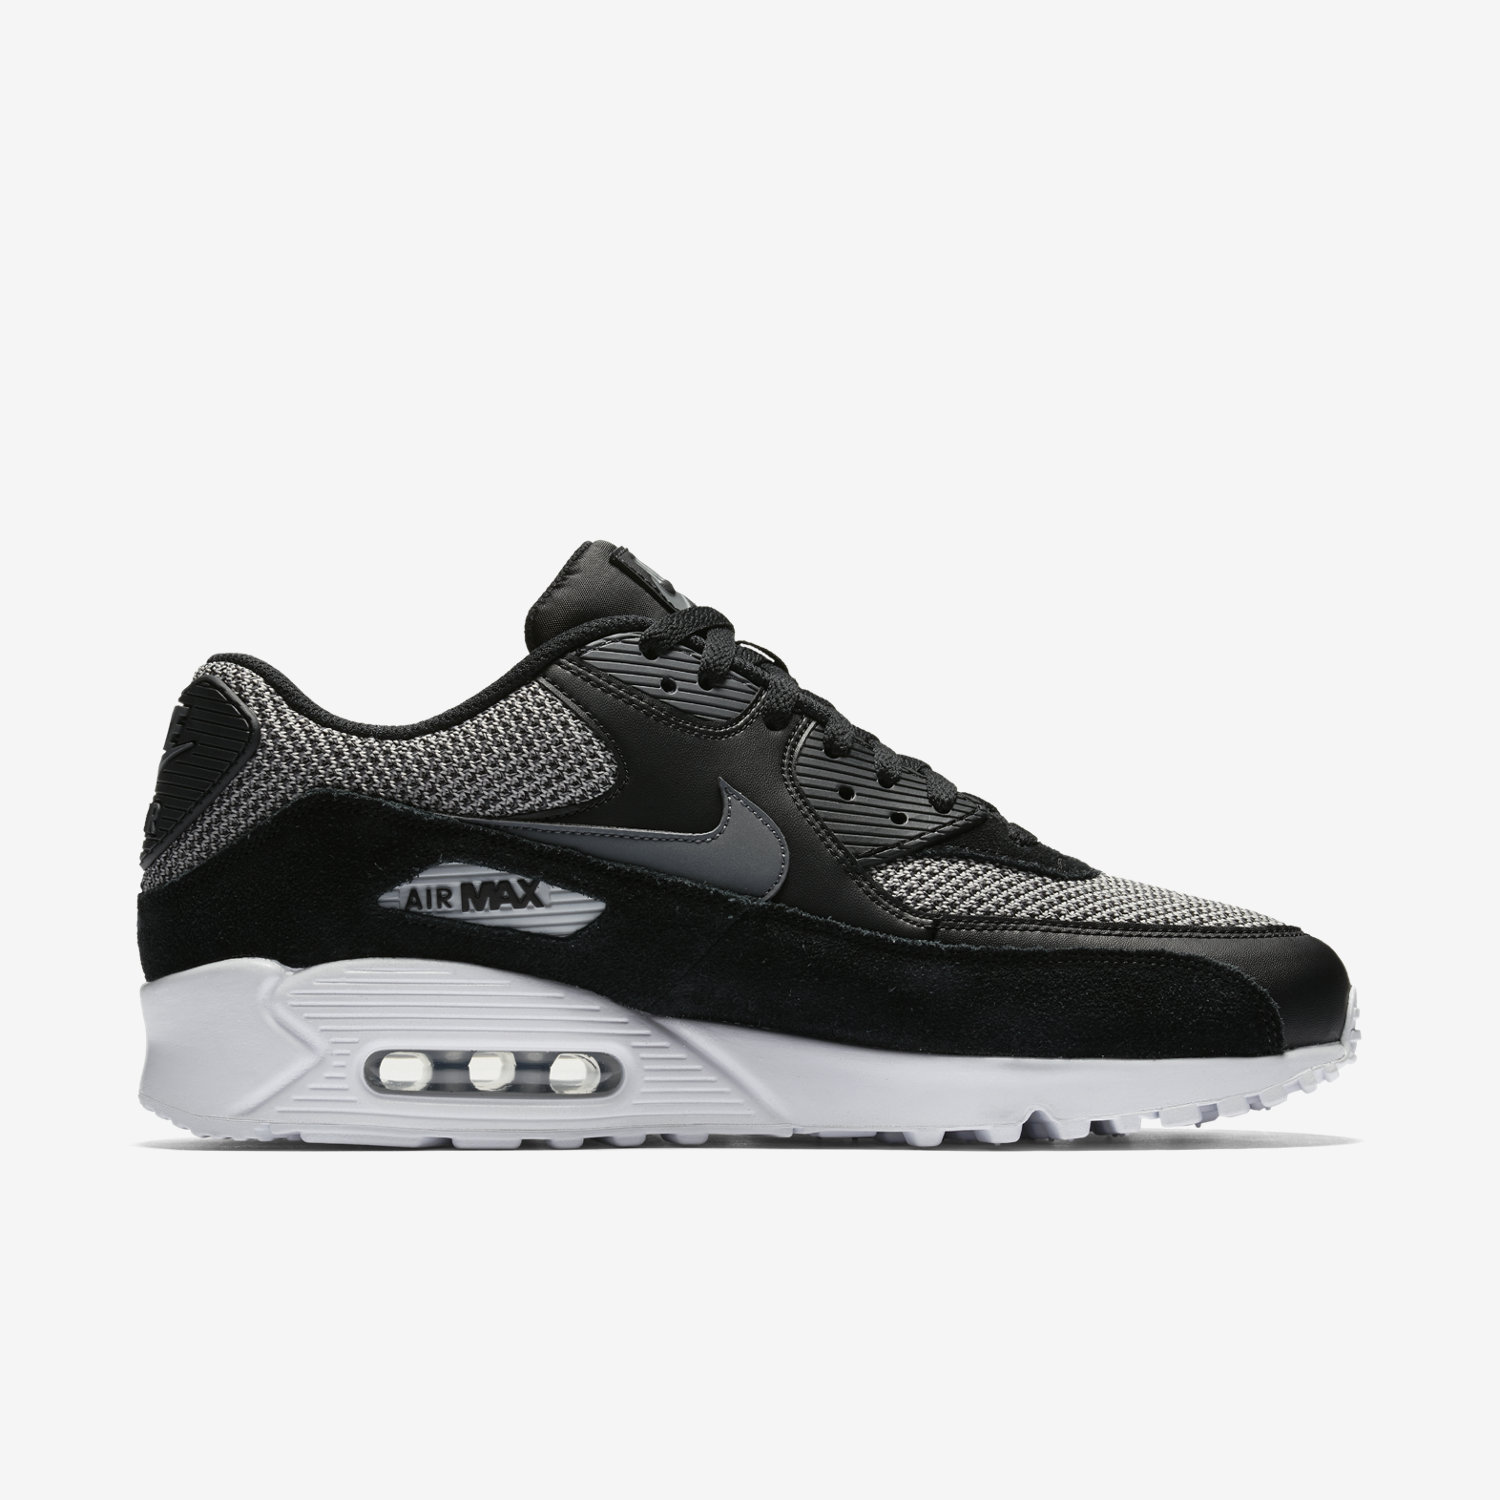 nike air max 90 essential leather national milk producers federation. Black Bedroom Furniture Sets. Home Design Ideas